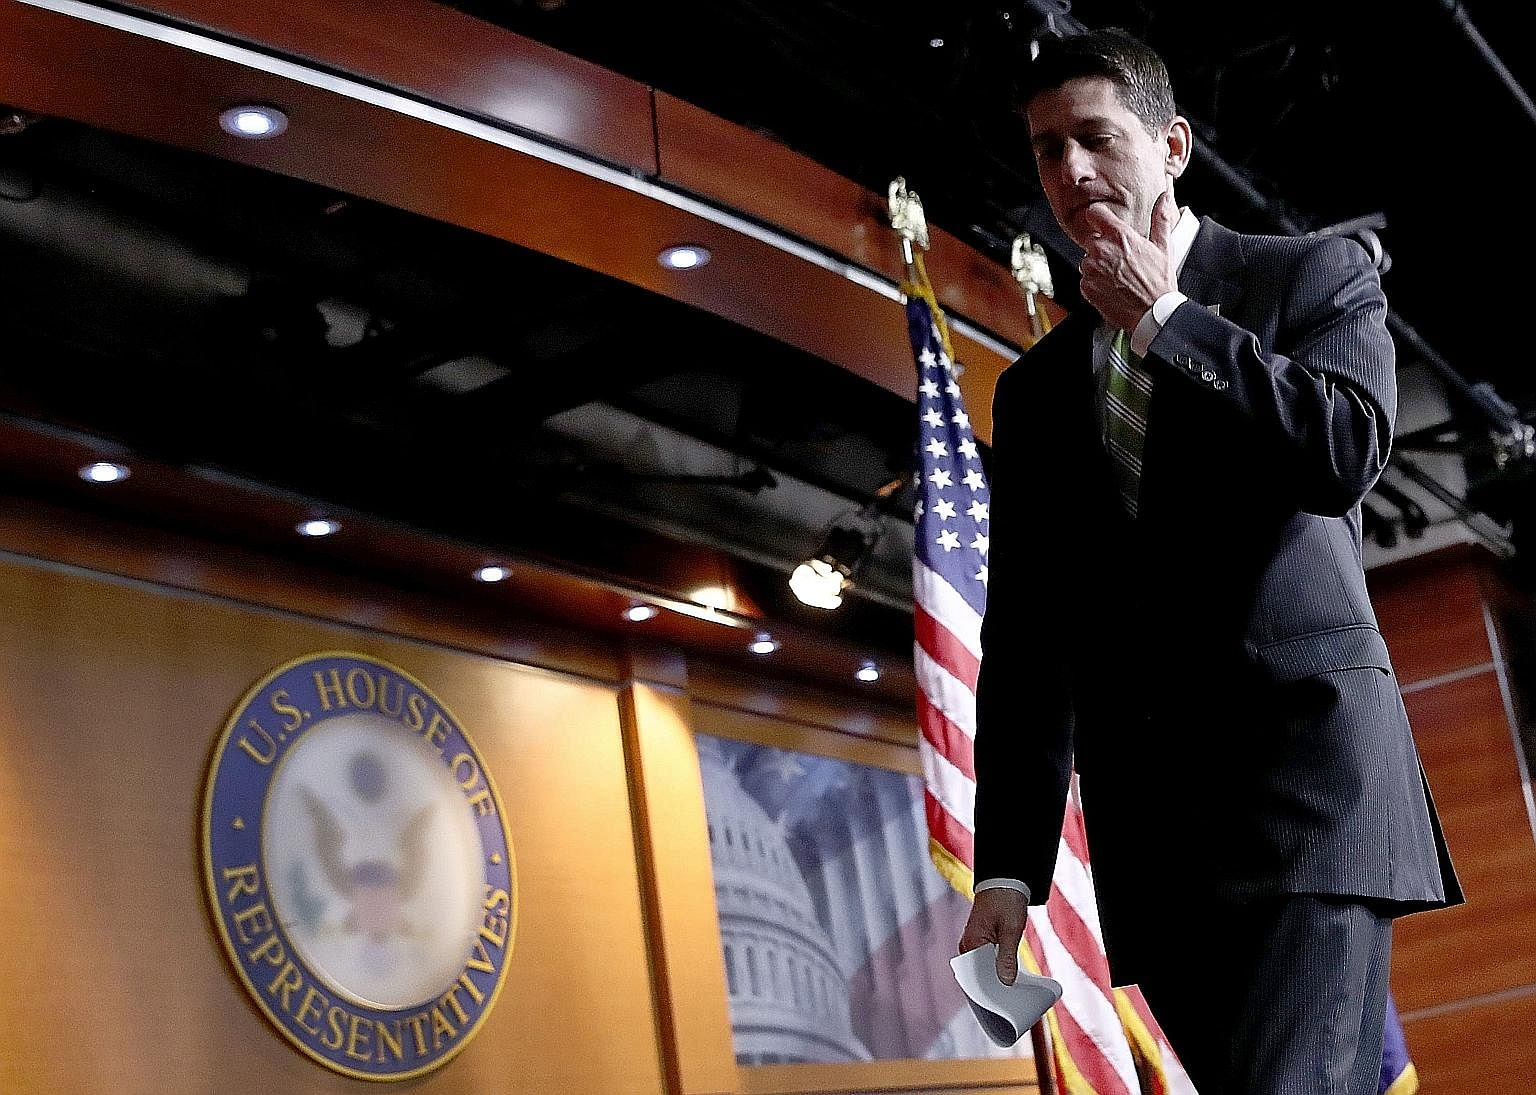 Mr Ryan leaving a press conference last Friday following the defeat of Mr Trump's healthcare Bill. He retains a grip on his job as US House Speaker, but is left to confront the realities of his failure.